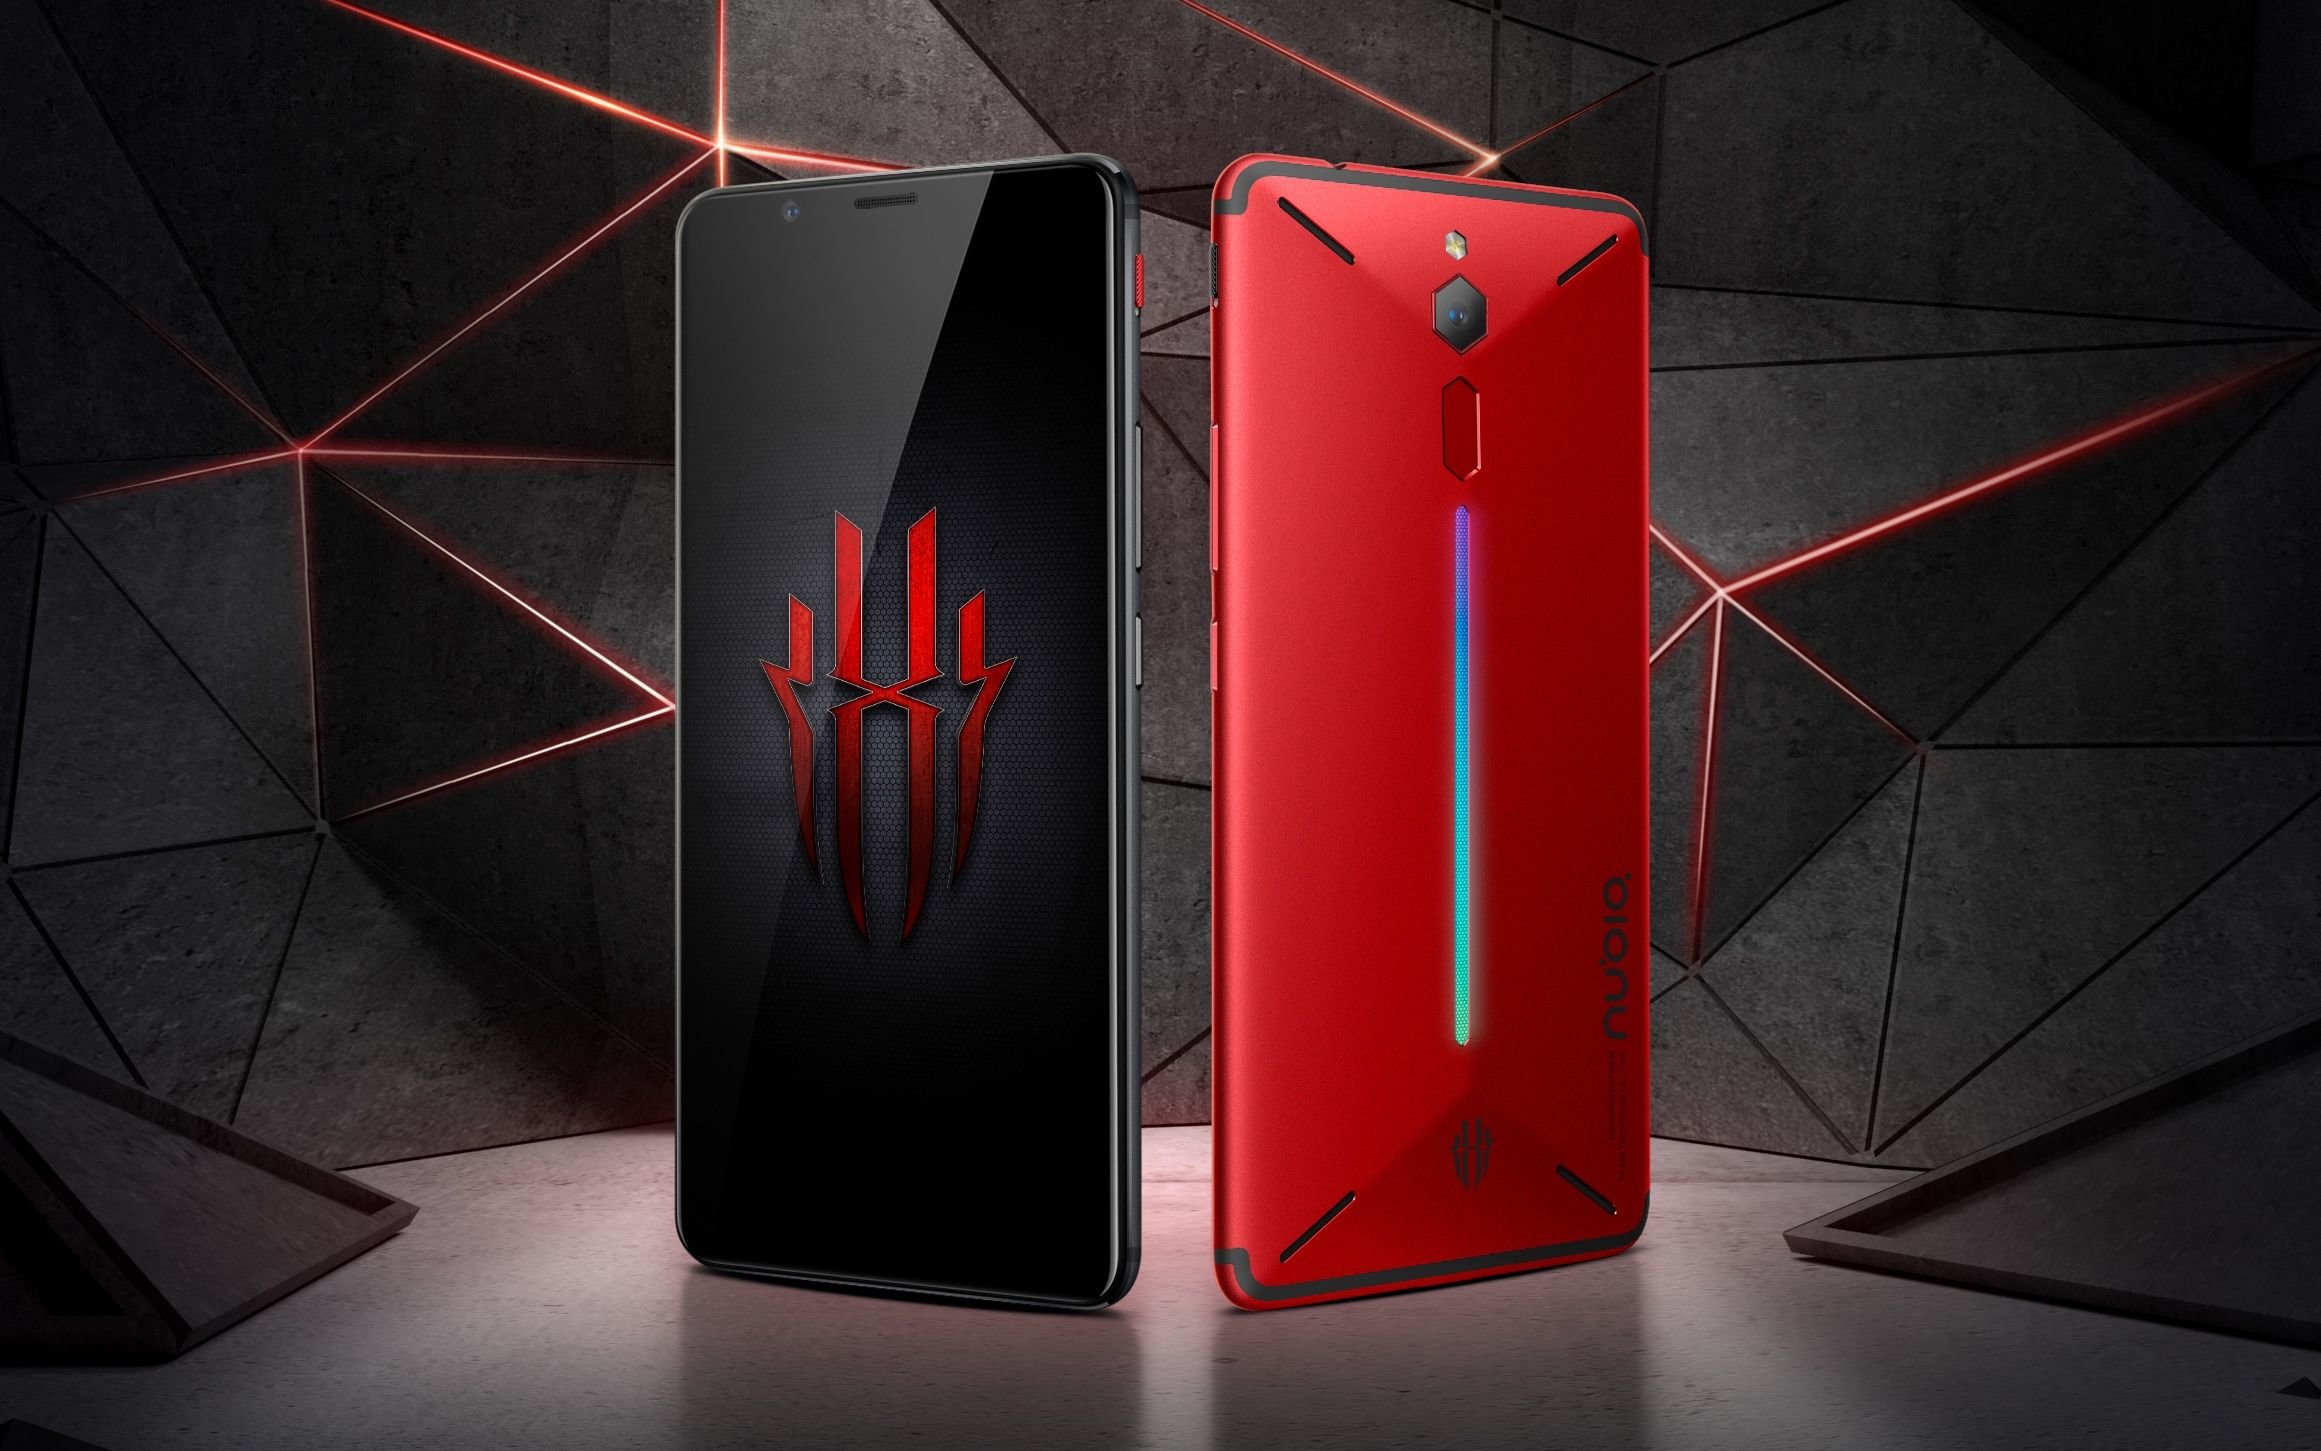 Nubia Red Magic Mars arrive avec un processeur Snapdragon 845 et 10 Go de RAM